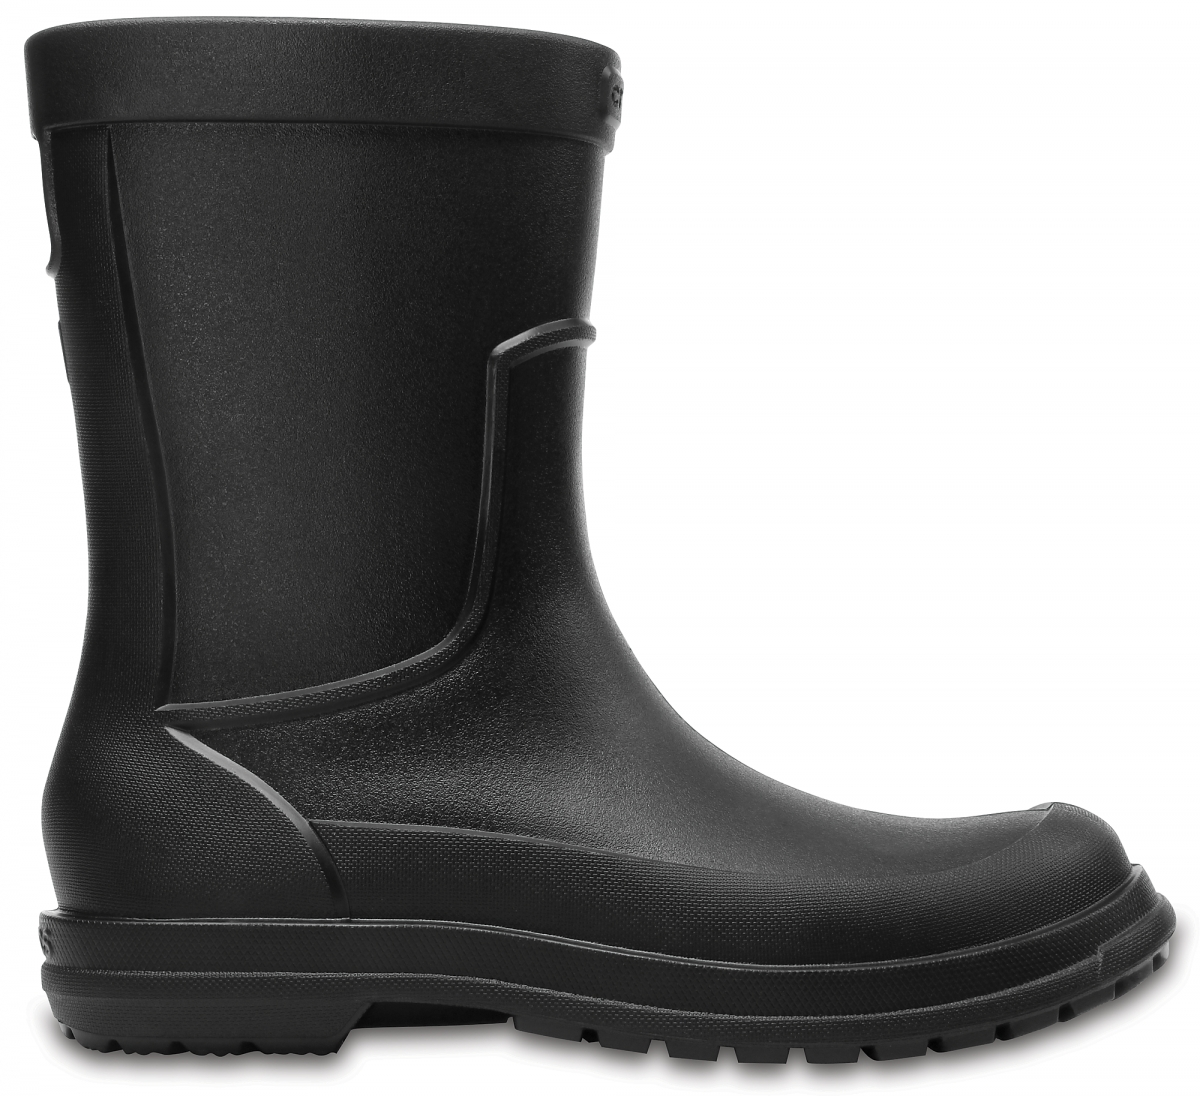 Crocs AllCast Rain Boot Men - Black, M10 (43-44)